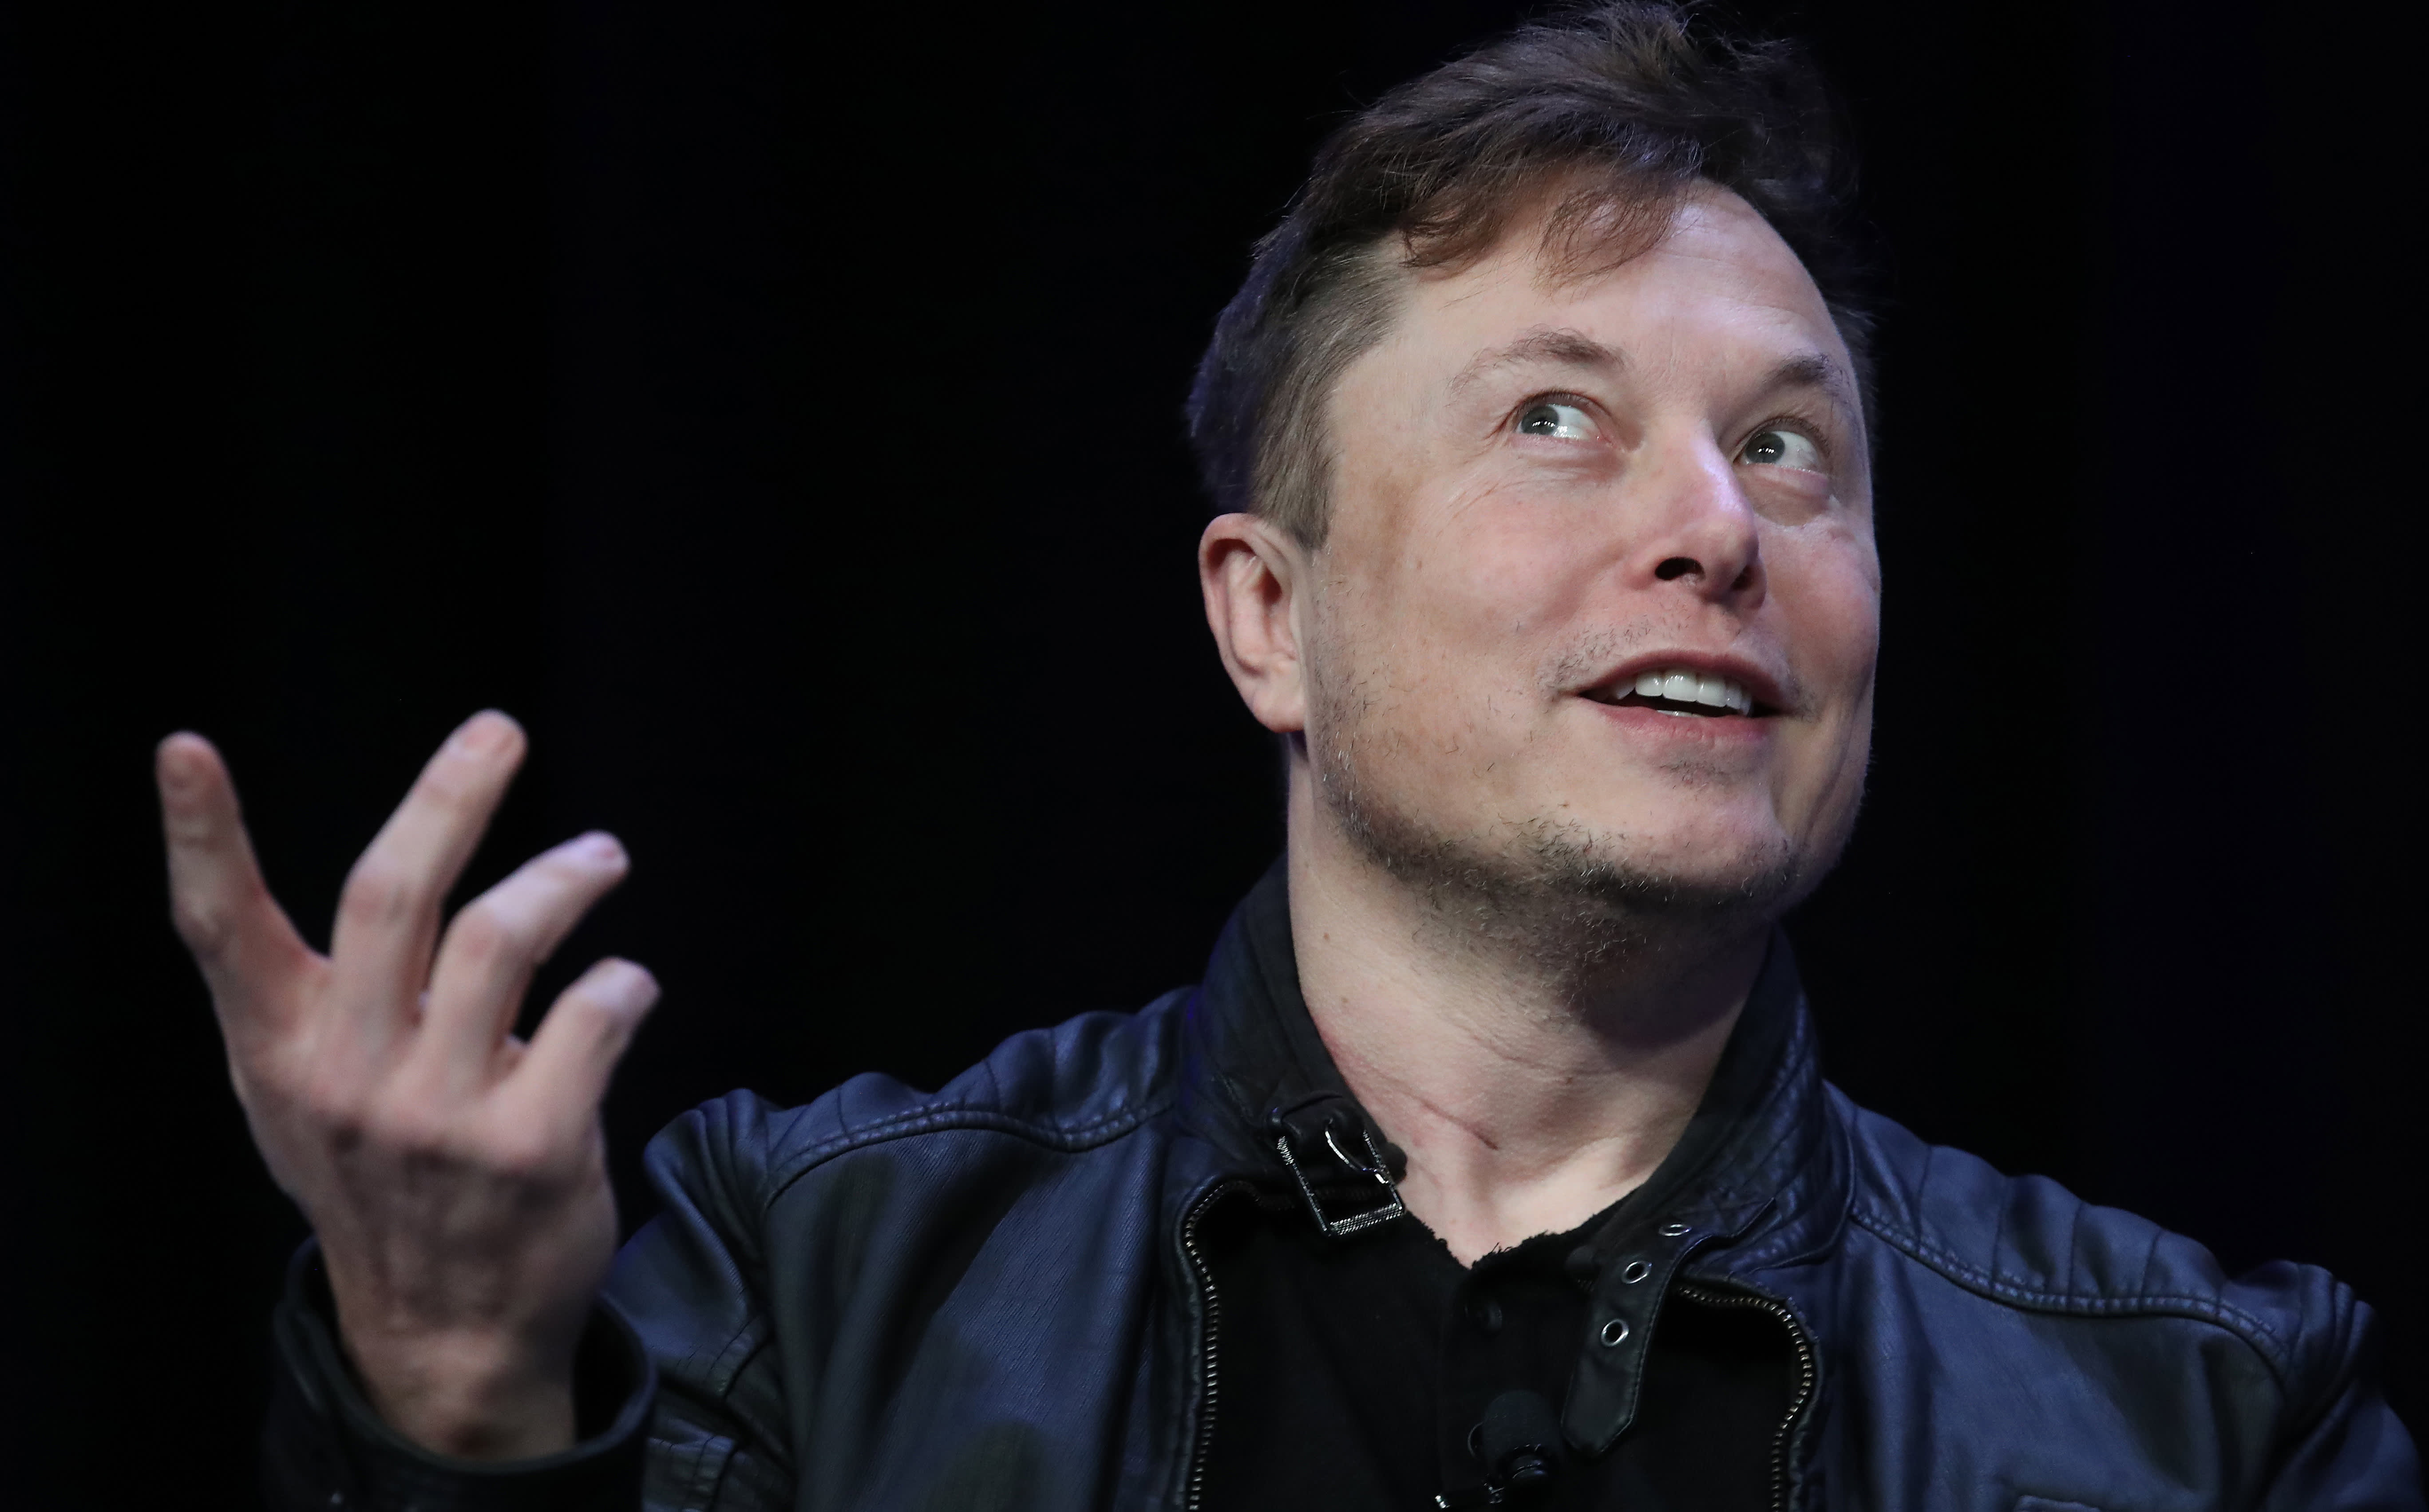 Bitcoin pops 10% after Musk suggests Tesla could accept the cryptocurrency again thumbnail